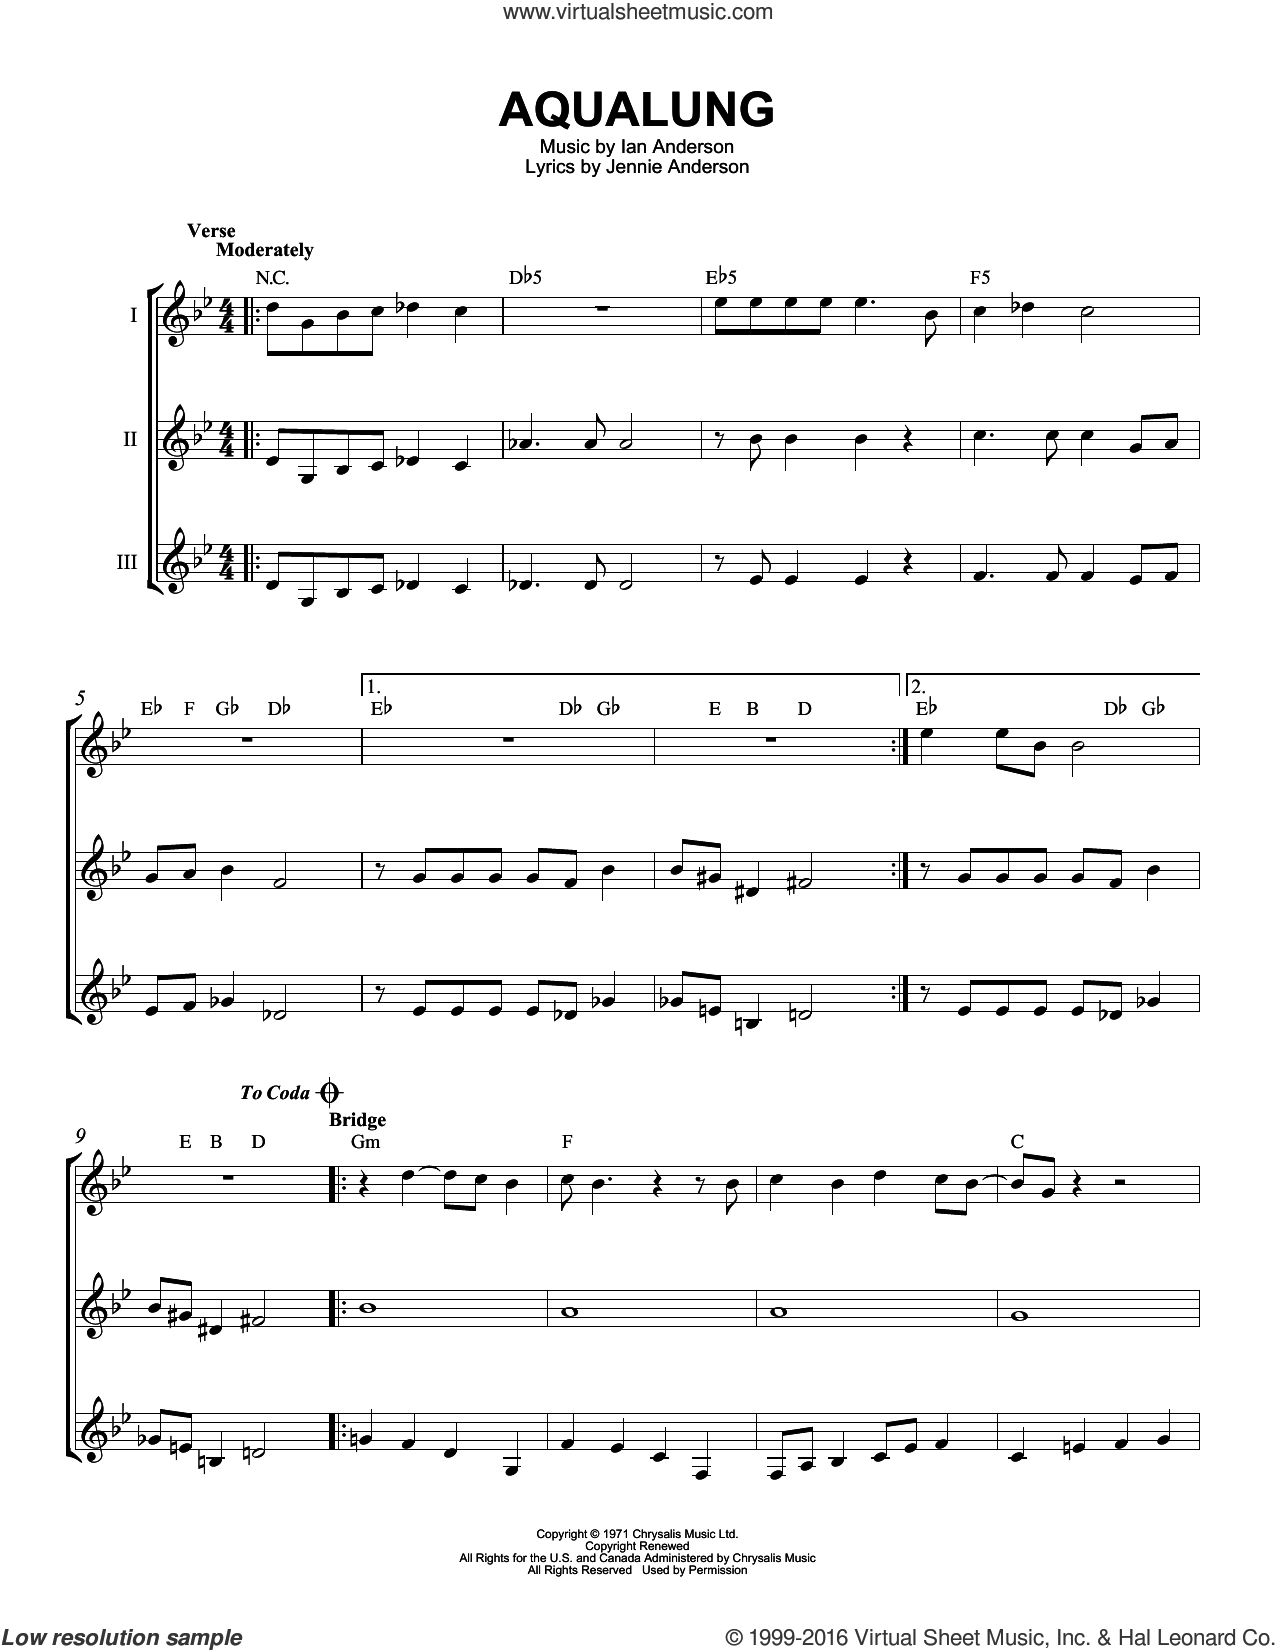 Aqualung sheet music for guitar ensemble by Jethro Tull, Ian Anderson and Jennie Anderson, intermediate skill level